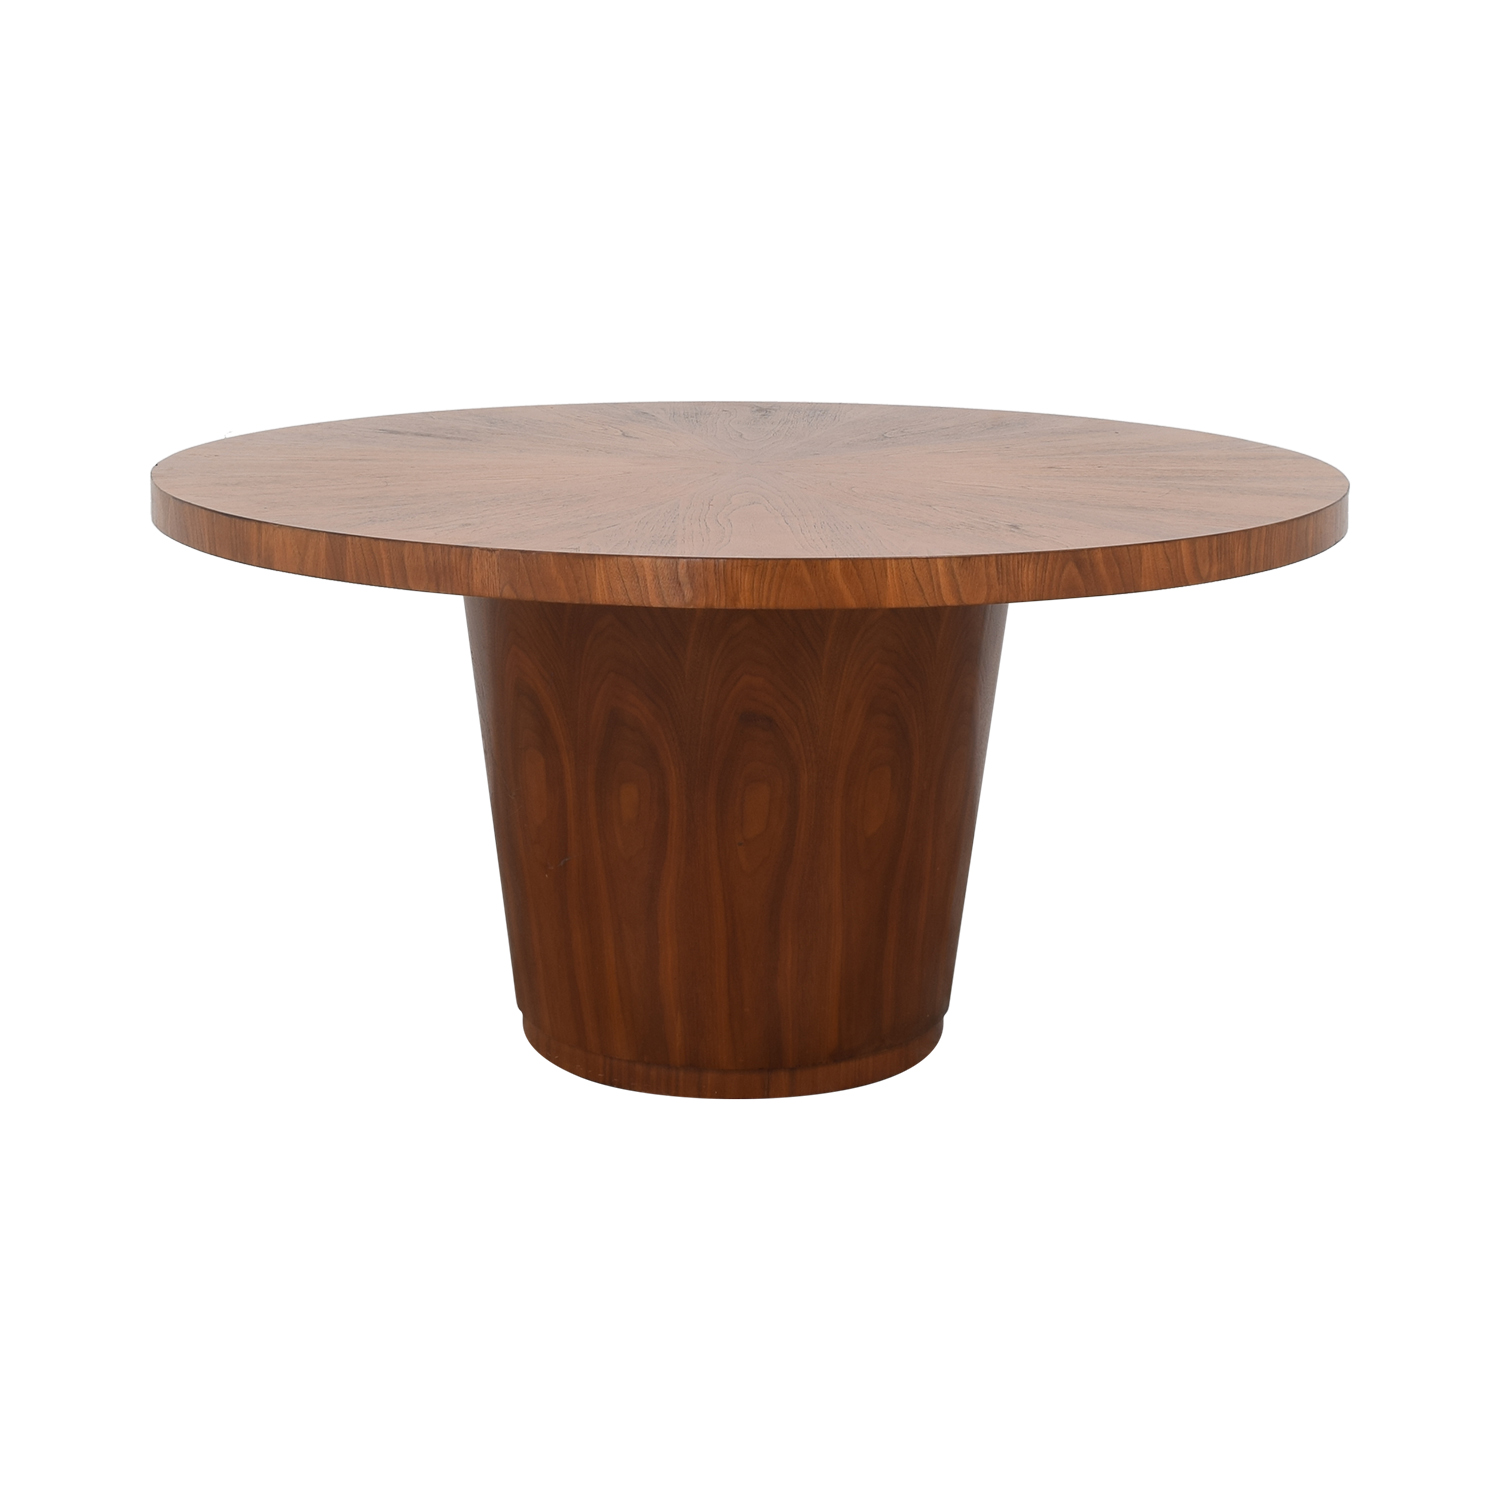 Crate & Barrel Crate & Barrel Round Dining Table